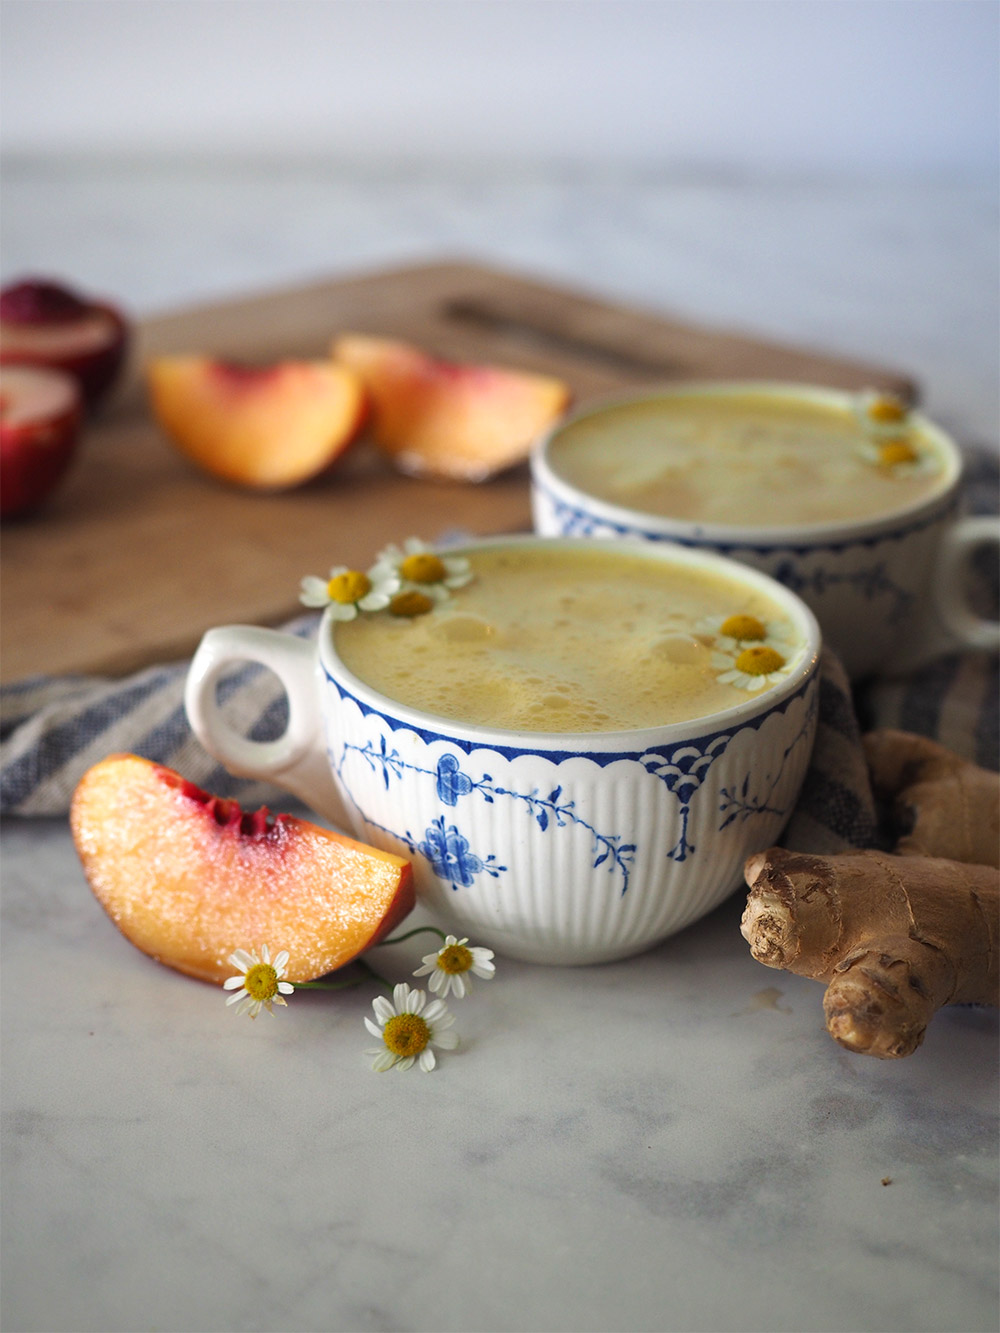 This vegantea latte combines farmers market fresh peaches with cozy chamomile tea, fresh ginger root, coconut oil and cardamom to make the perfect end of summer elixir.